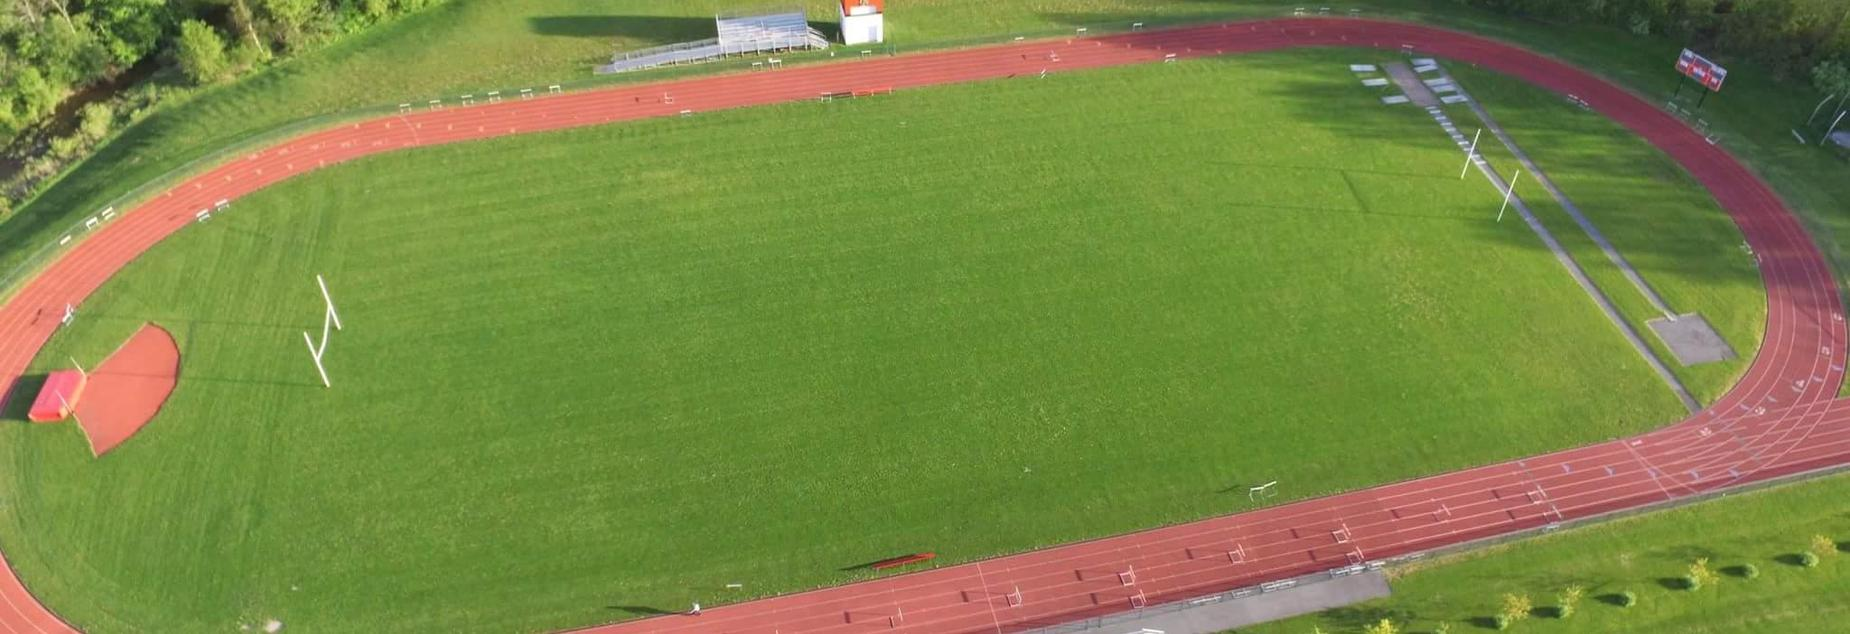 Arial view of football field